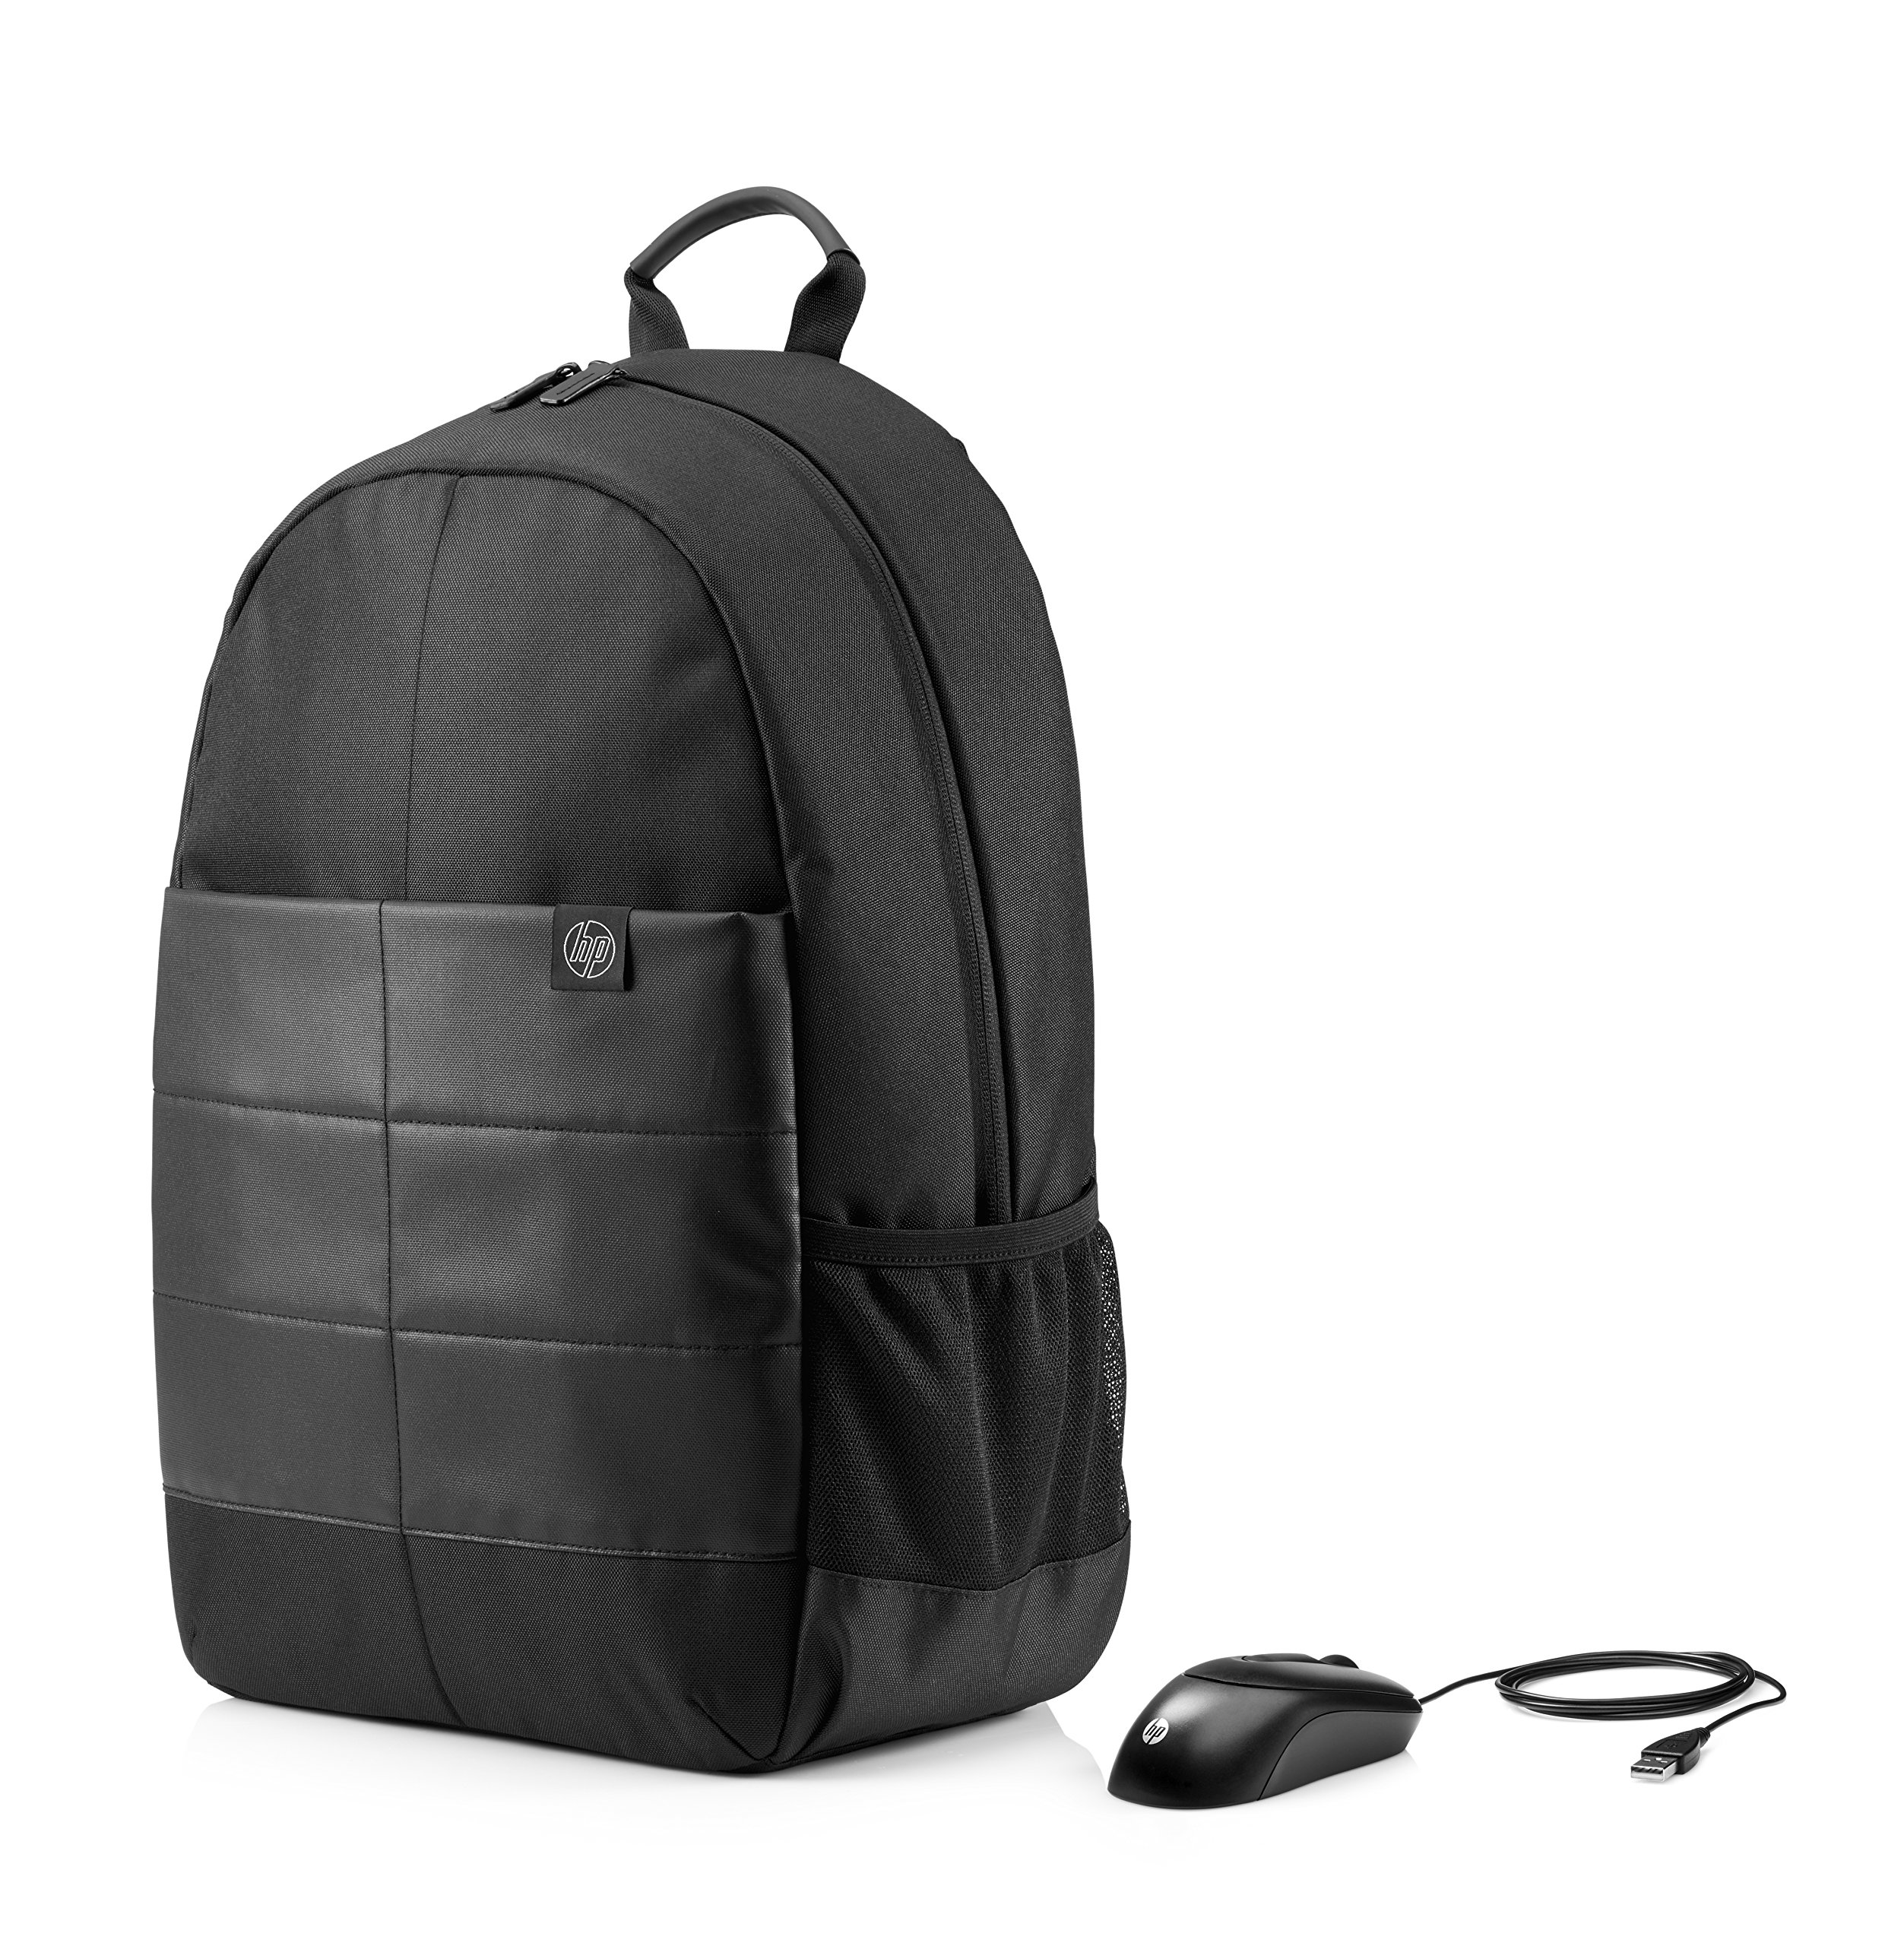 HP 15 inch Laptop Backpack Wired